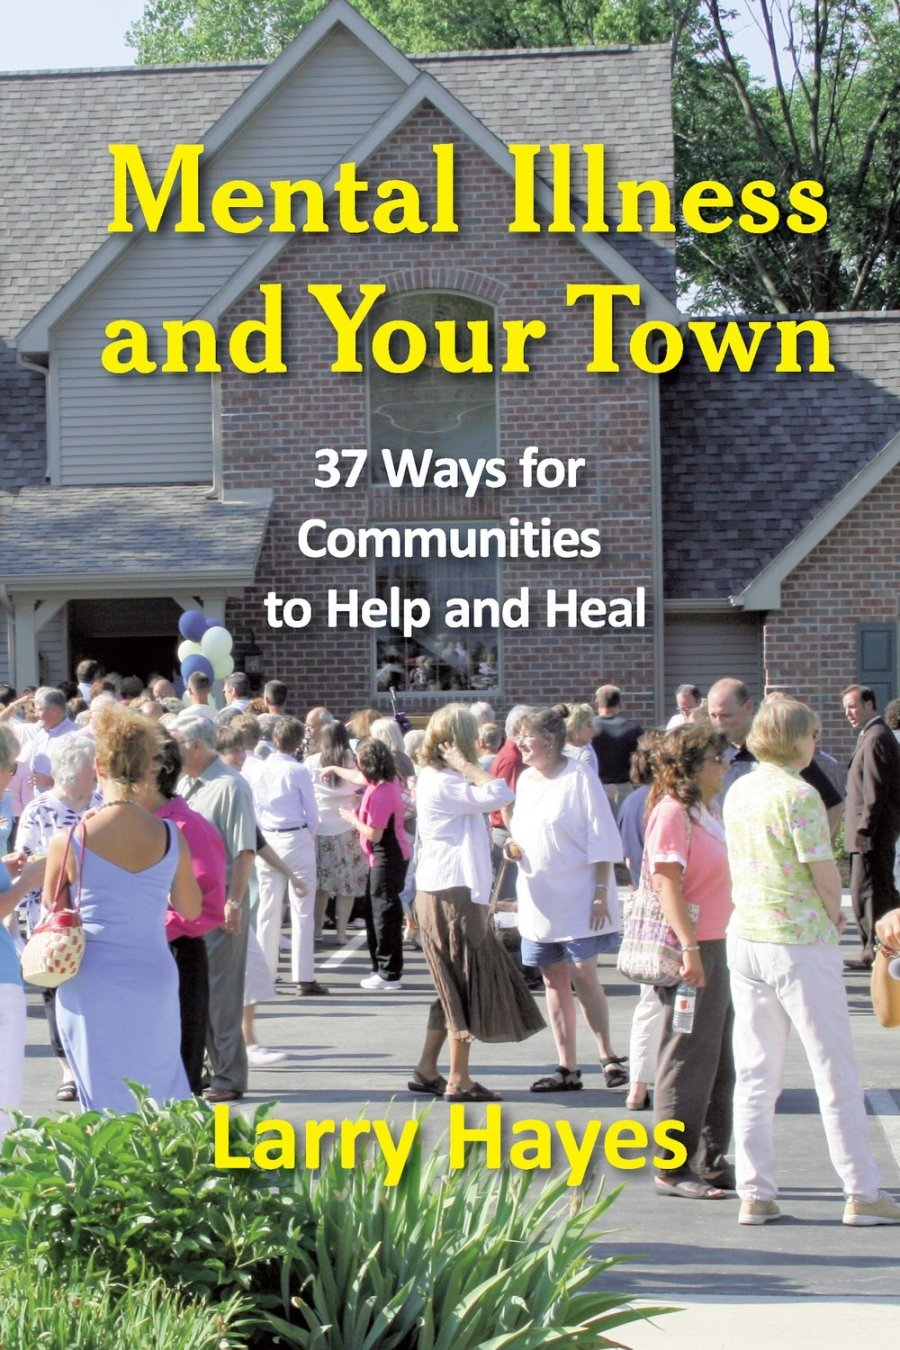 Mental Illness and Your Town